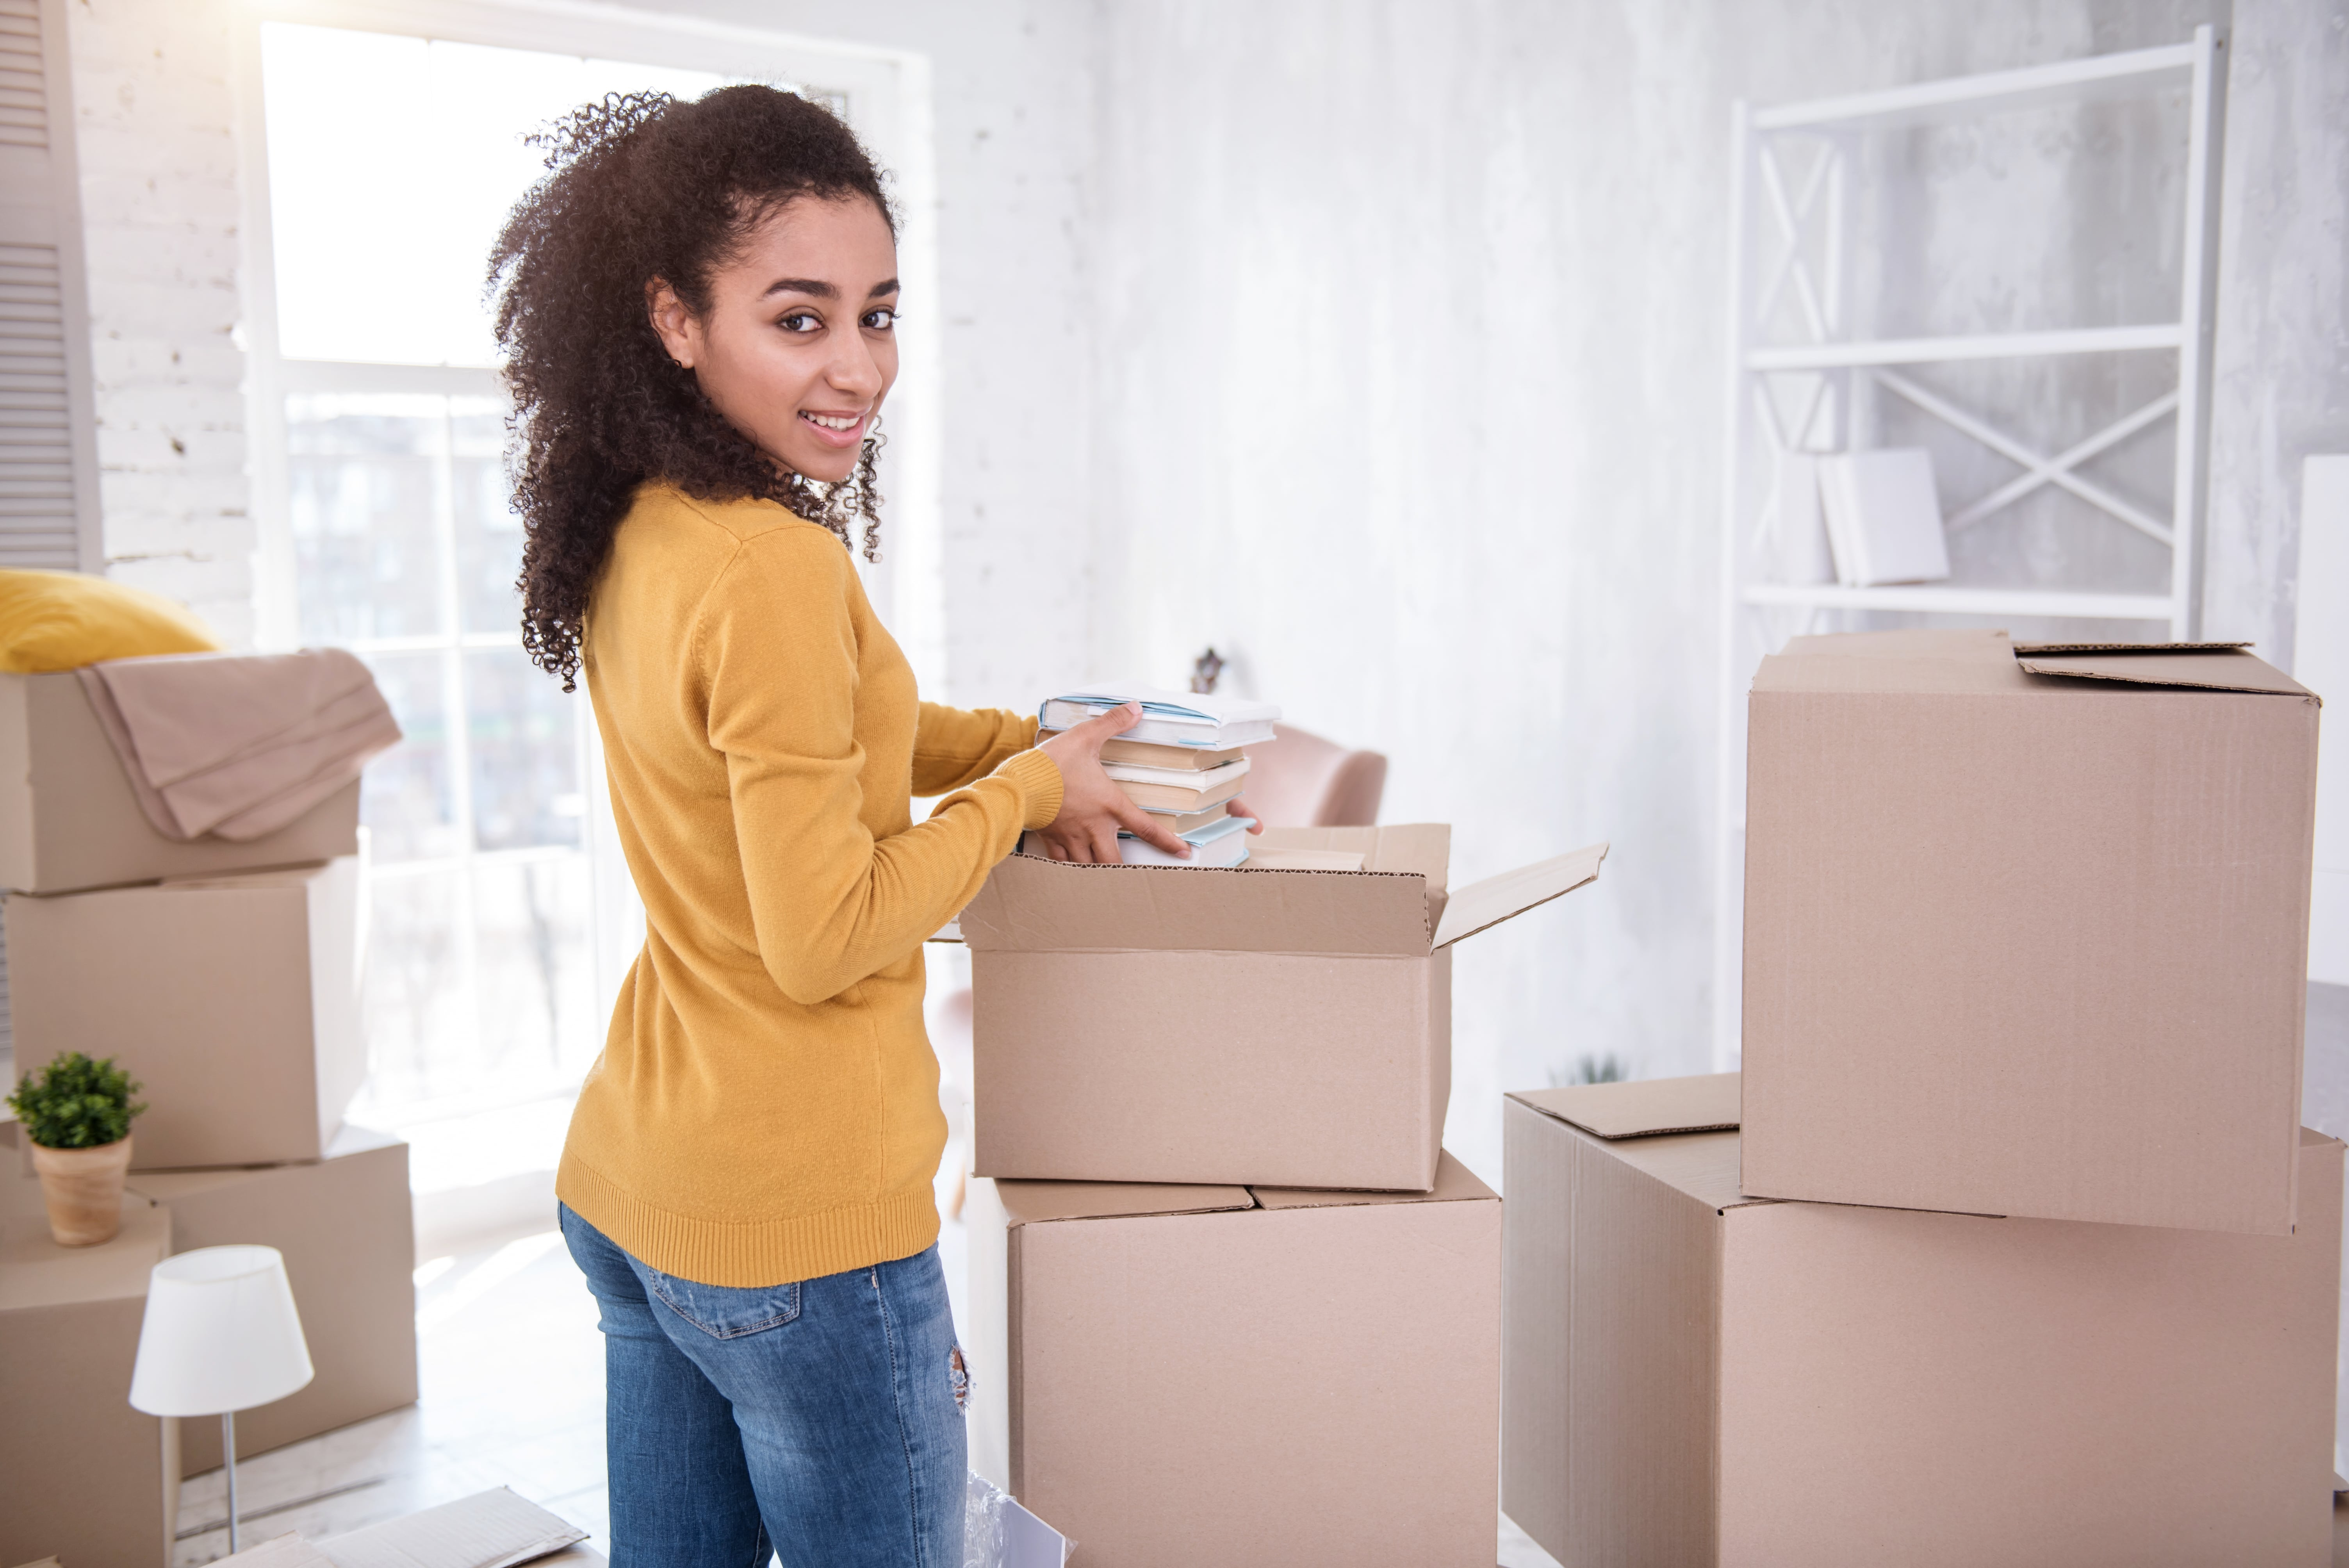 Can I Use My 529 Plan to Pay for Room and Board?